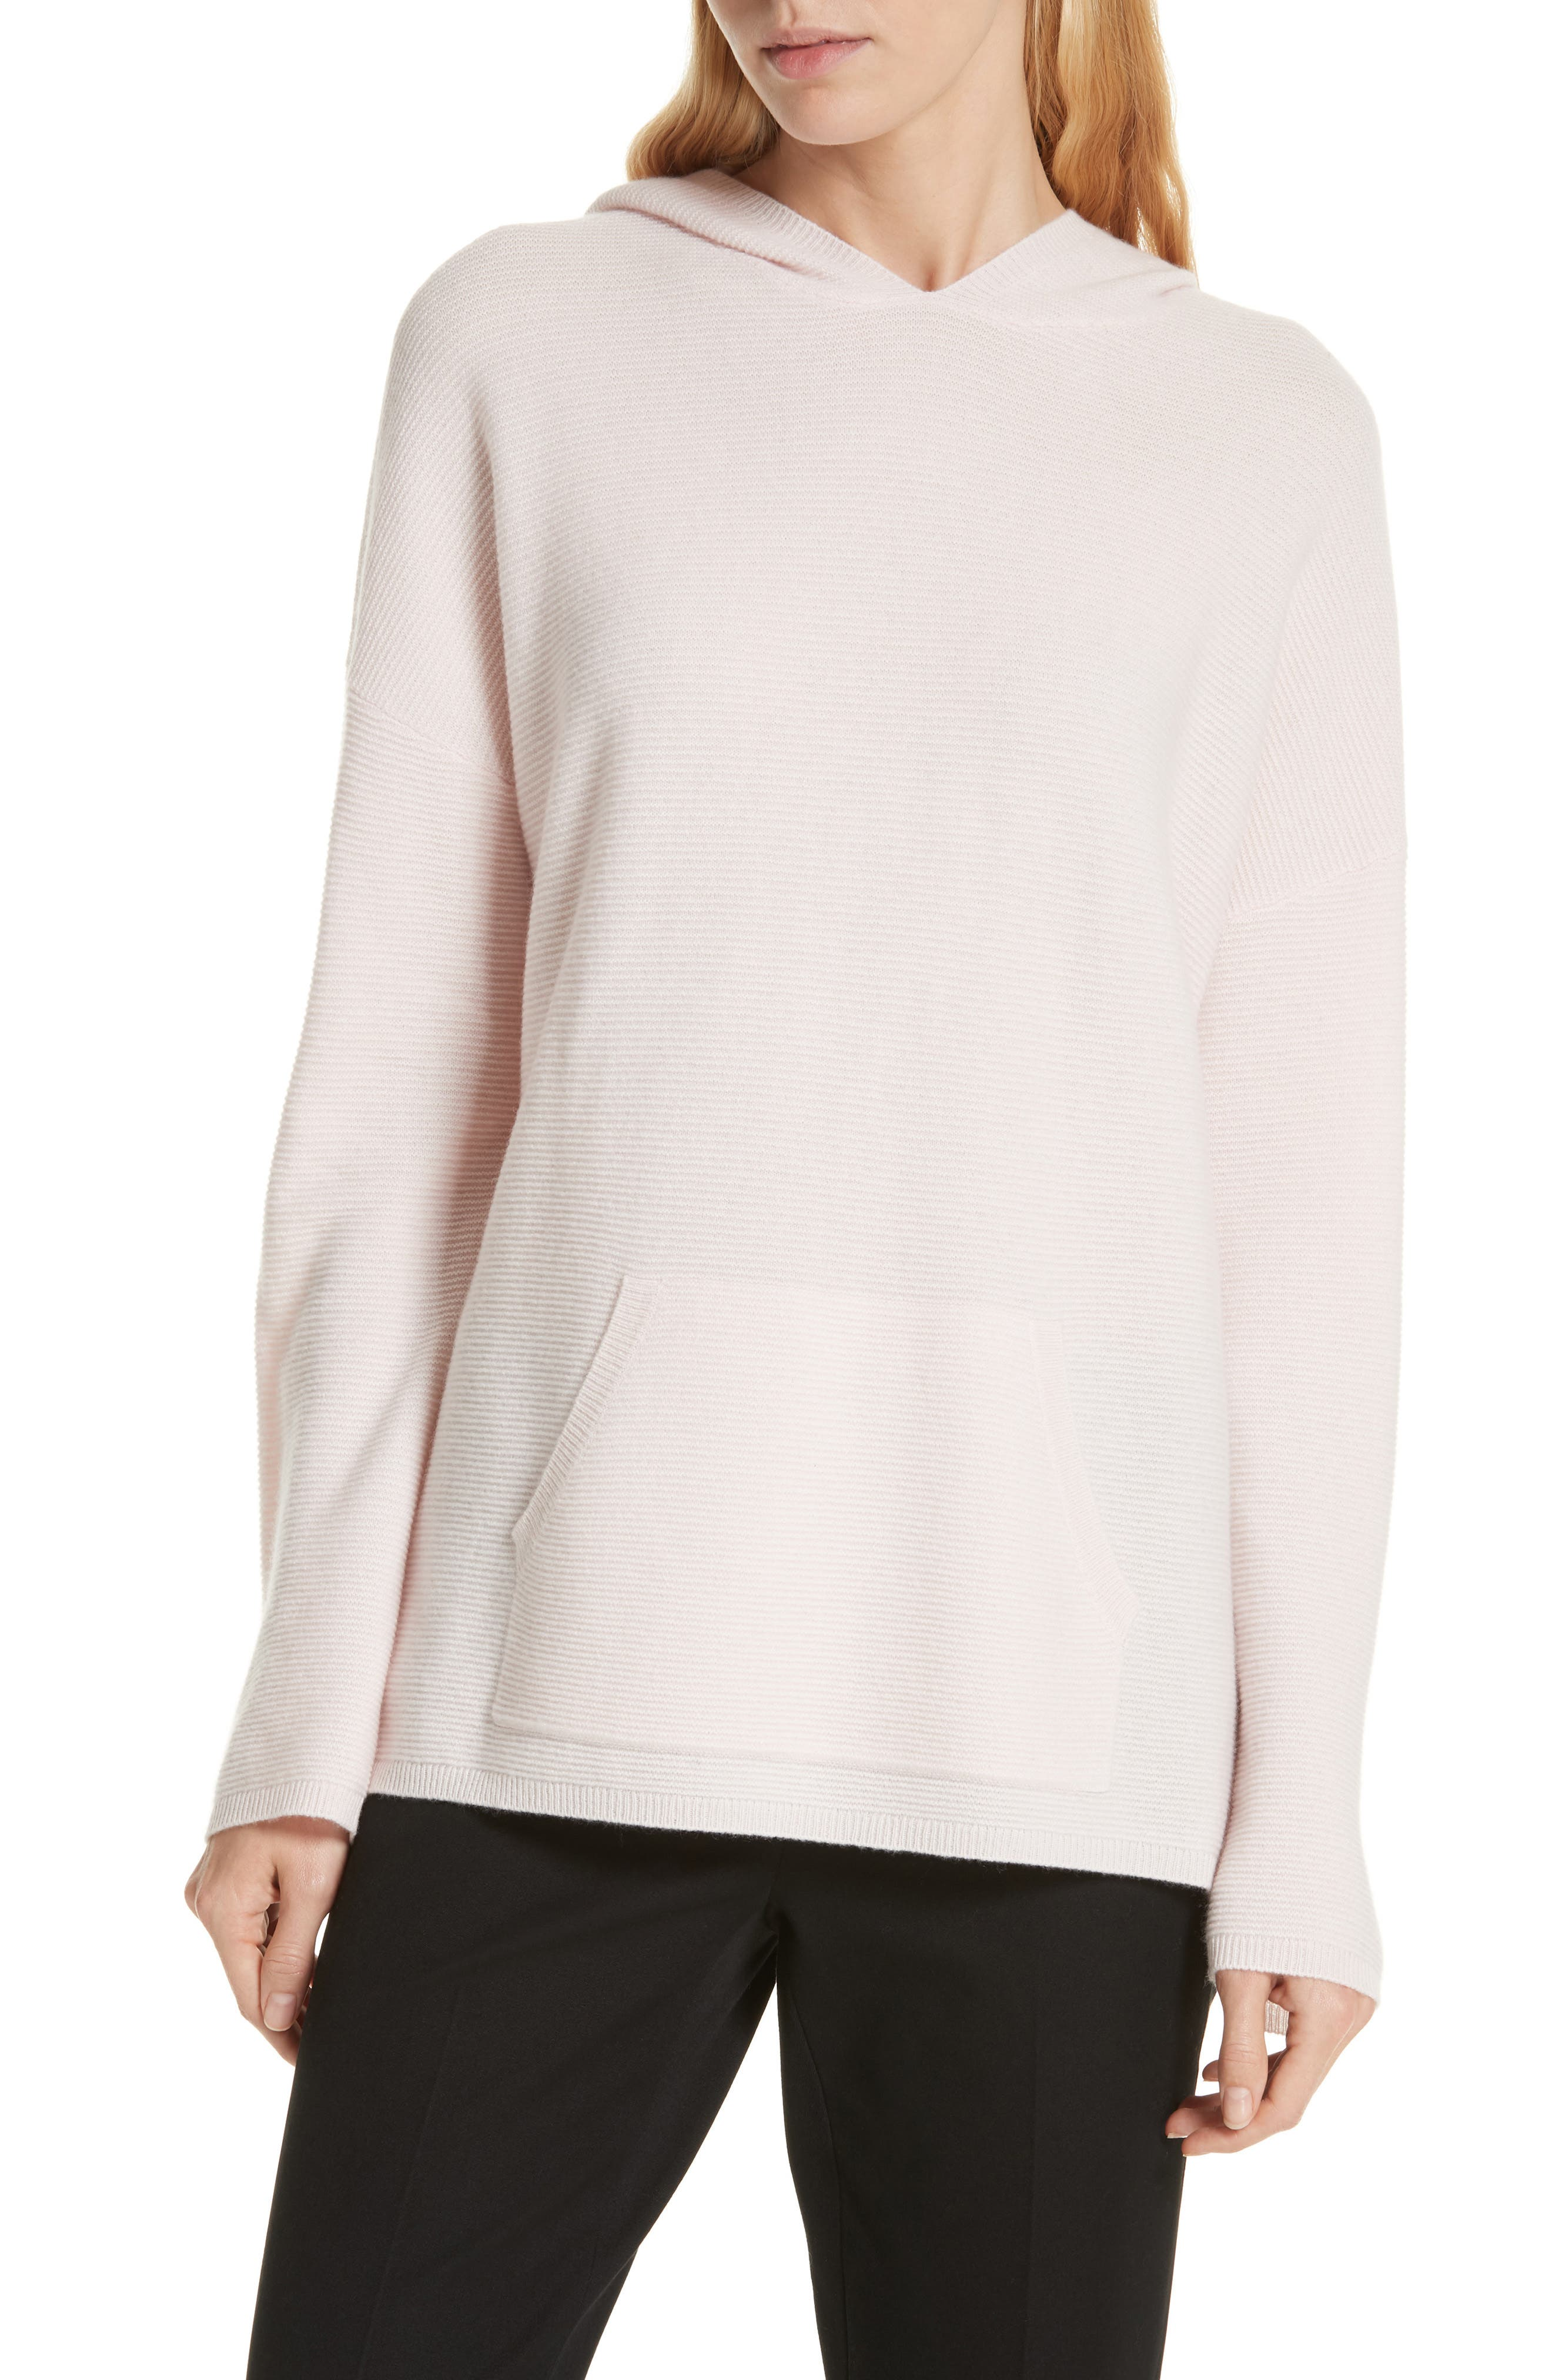 Nordstrom Signature Cashmere Pocket Hoodie Sweater, Pink